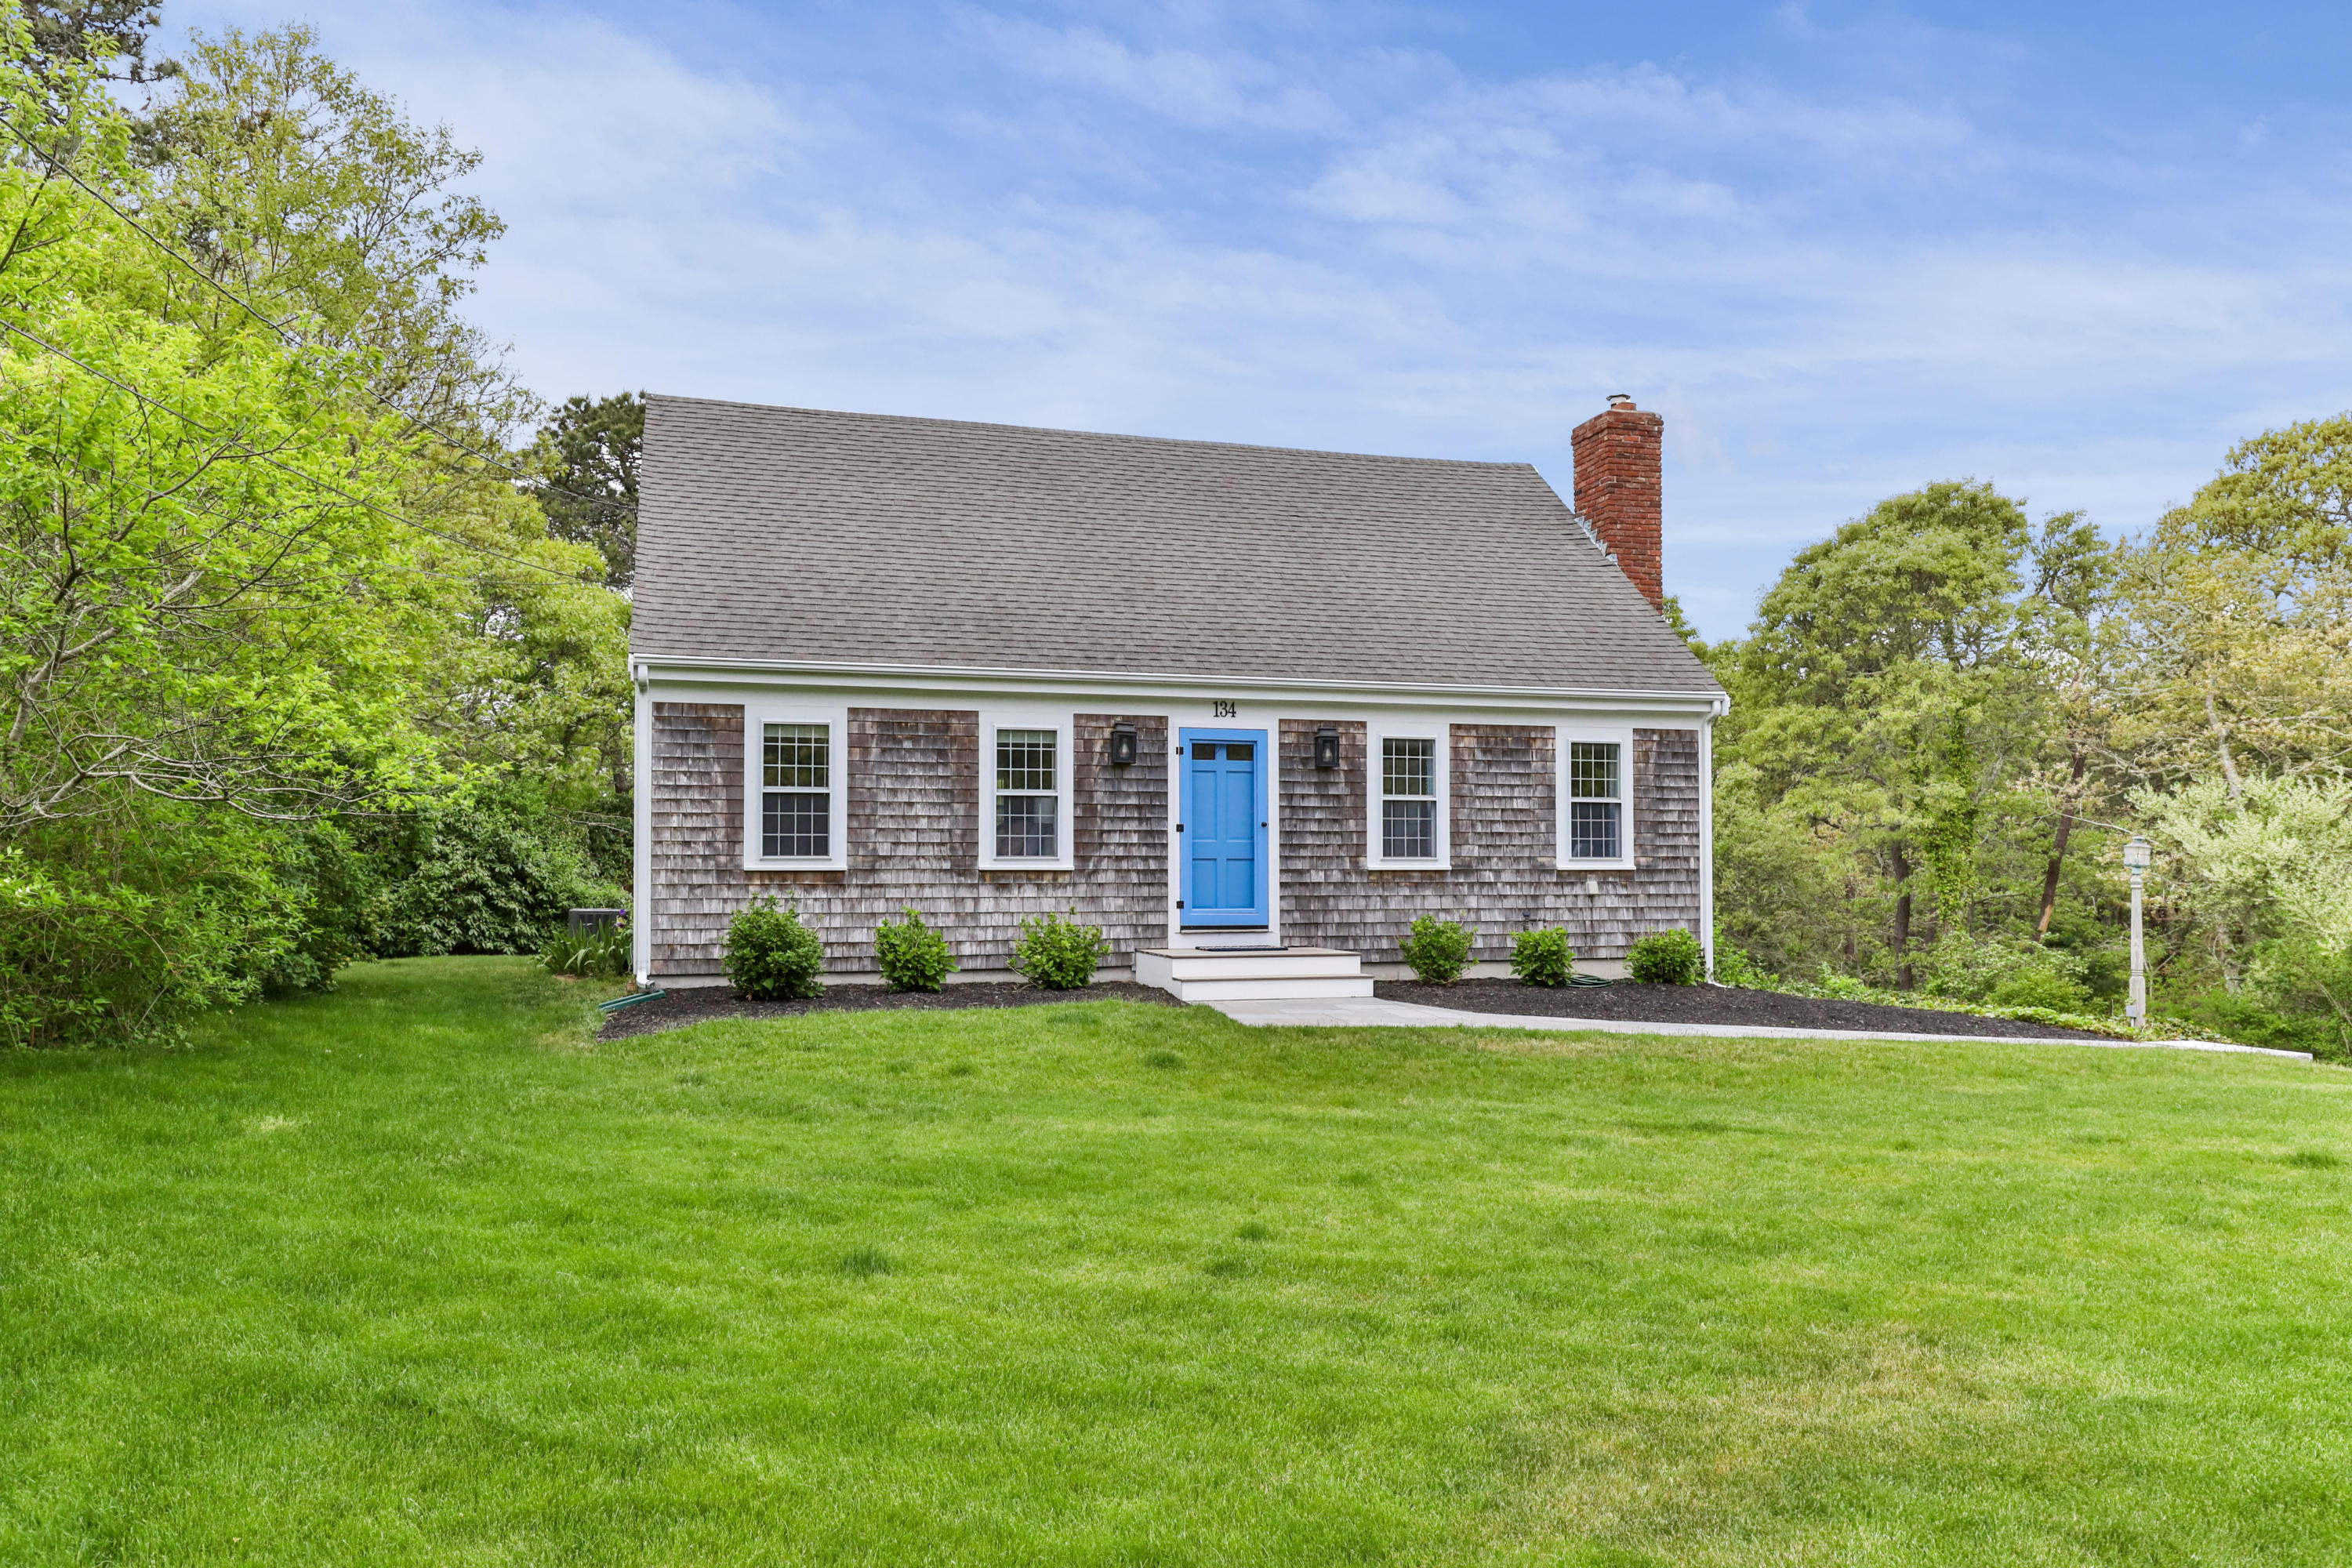 134 Cockle Cove Road, Chatham, MA details